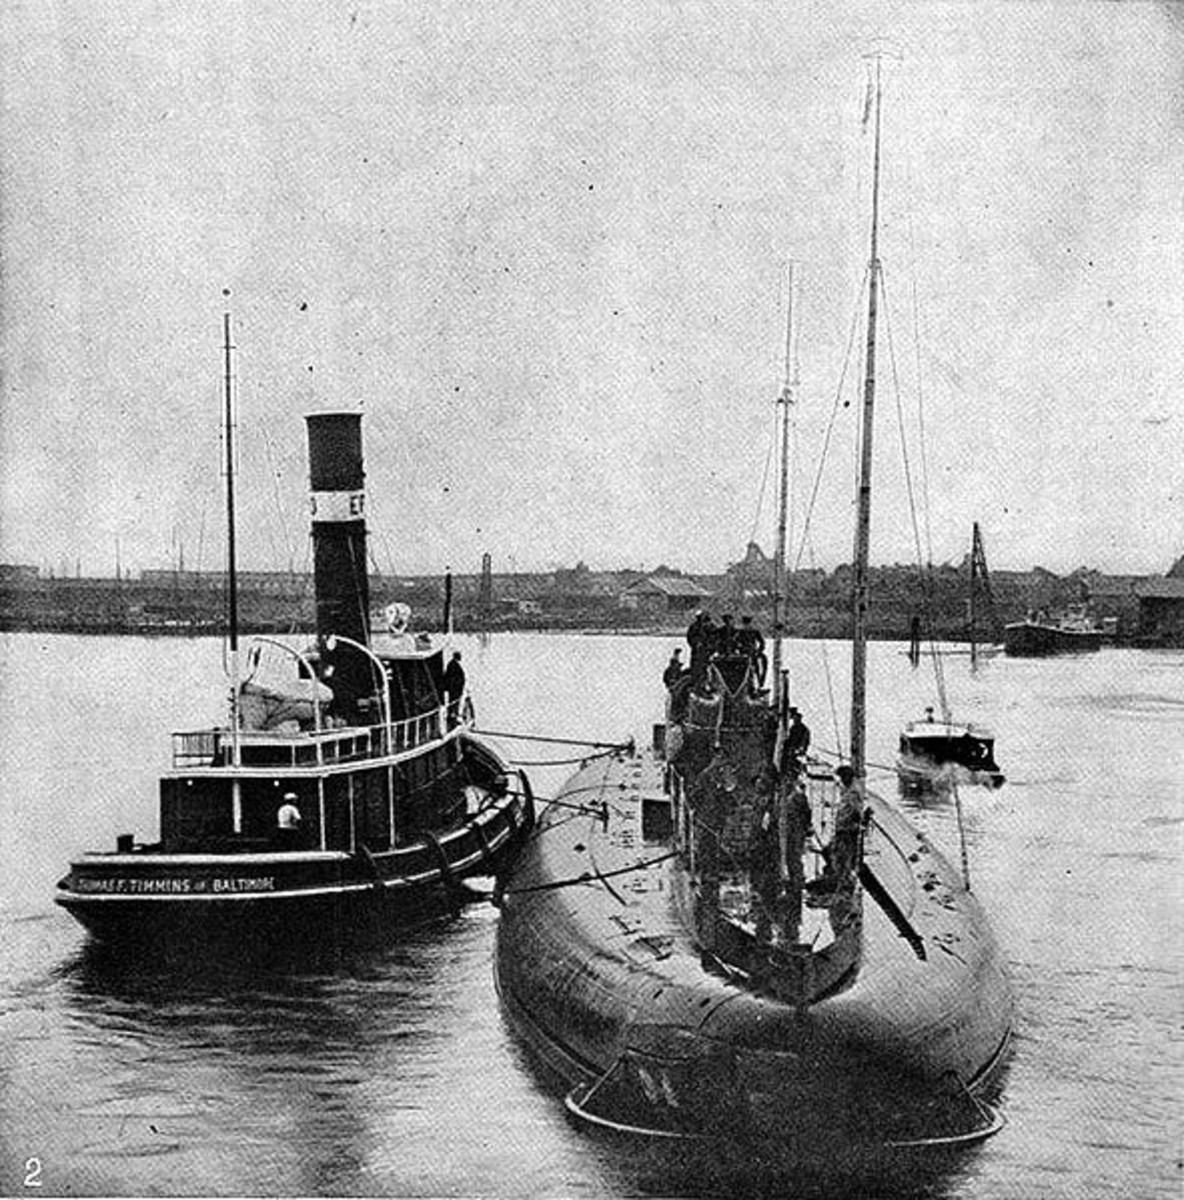 World War 1 History: 1916—German Merchant U-Boat Arrives In U.S.